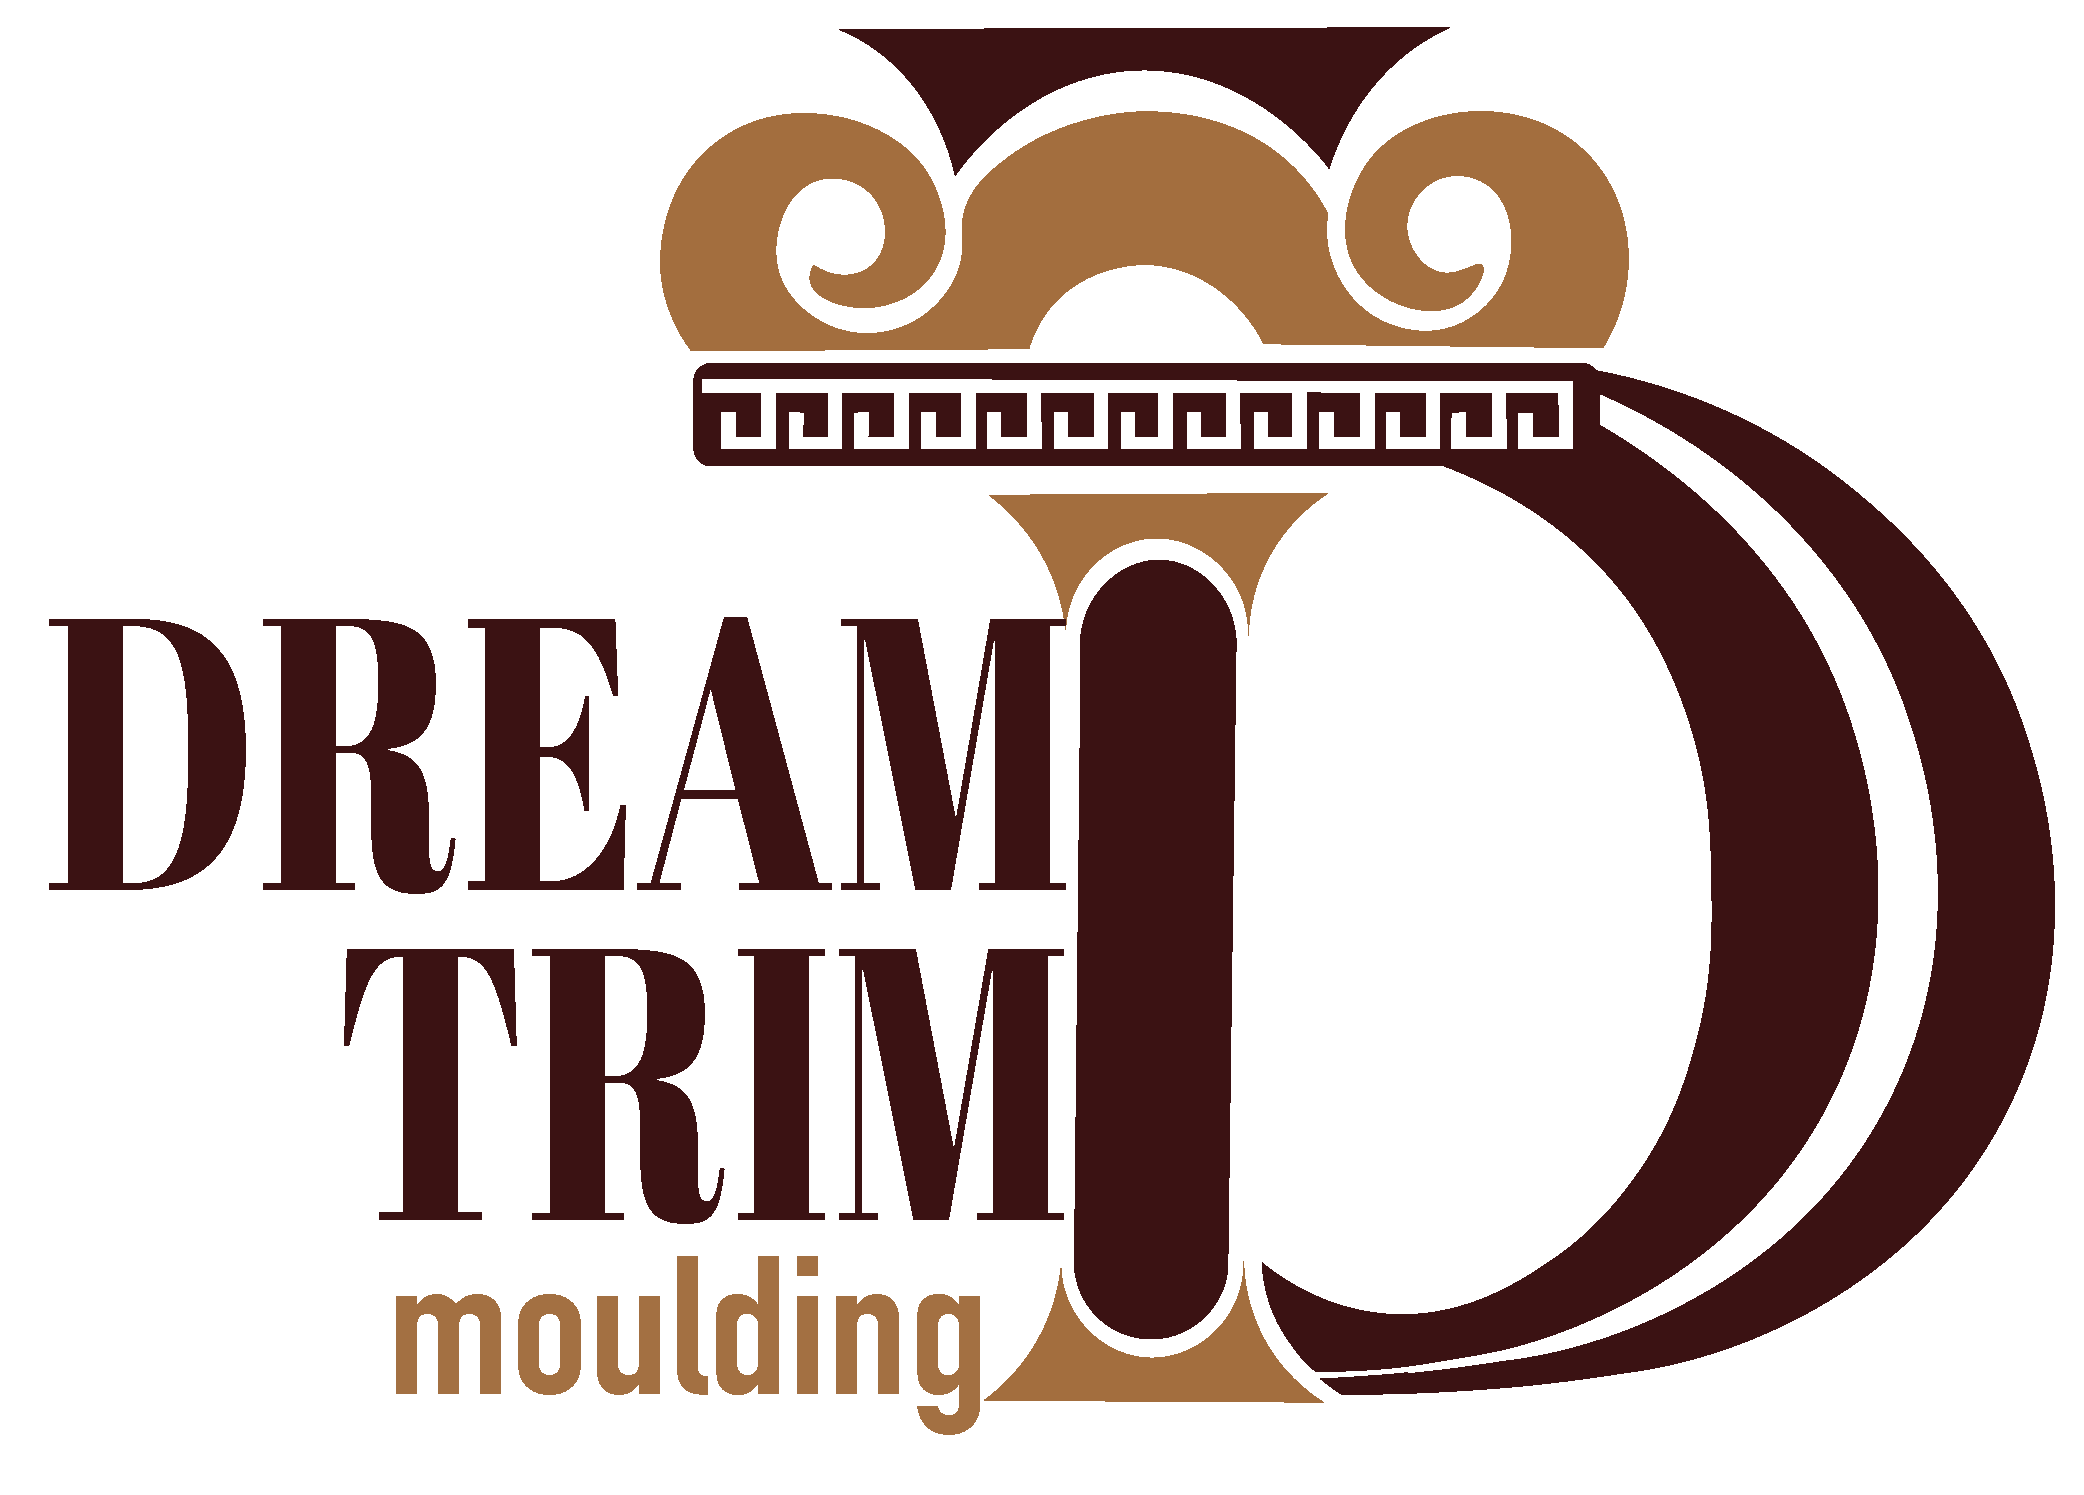 Crown molding clipart banner transparent stock Moldings / Mouldings Services in Toronto | HomeStars banner transparent stock